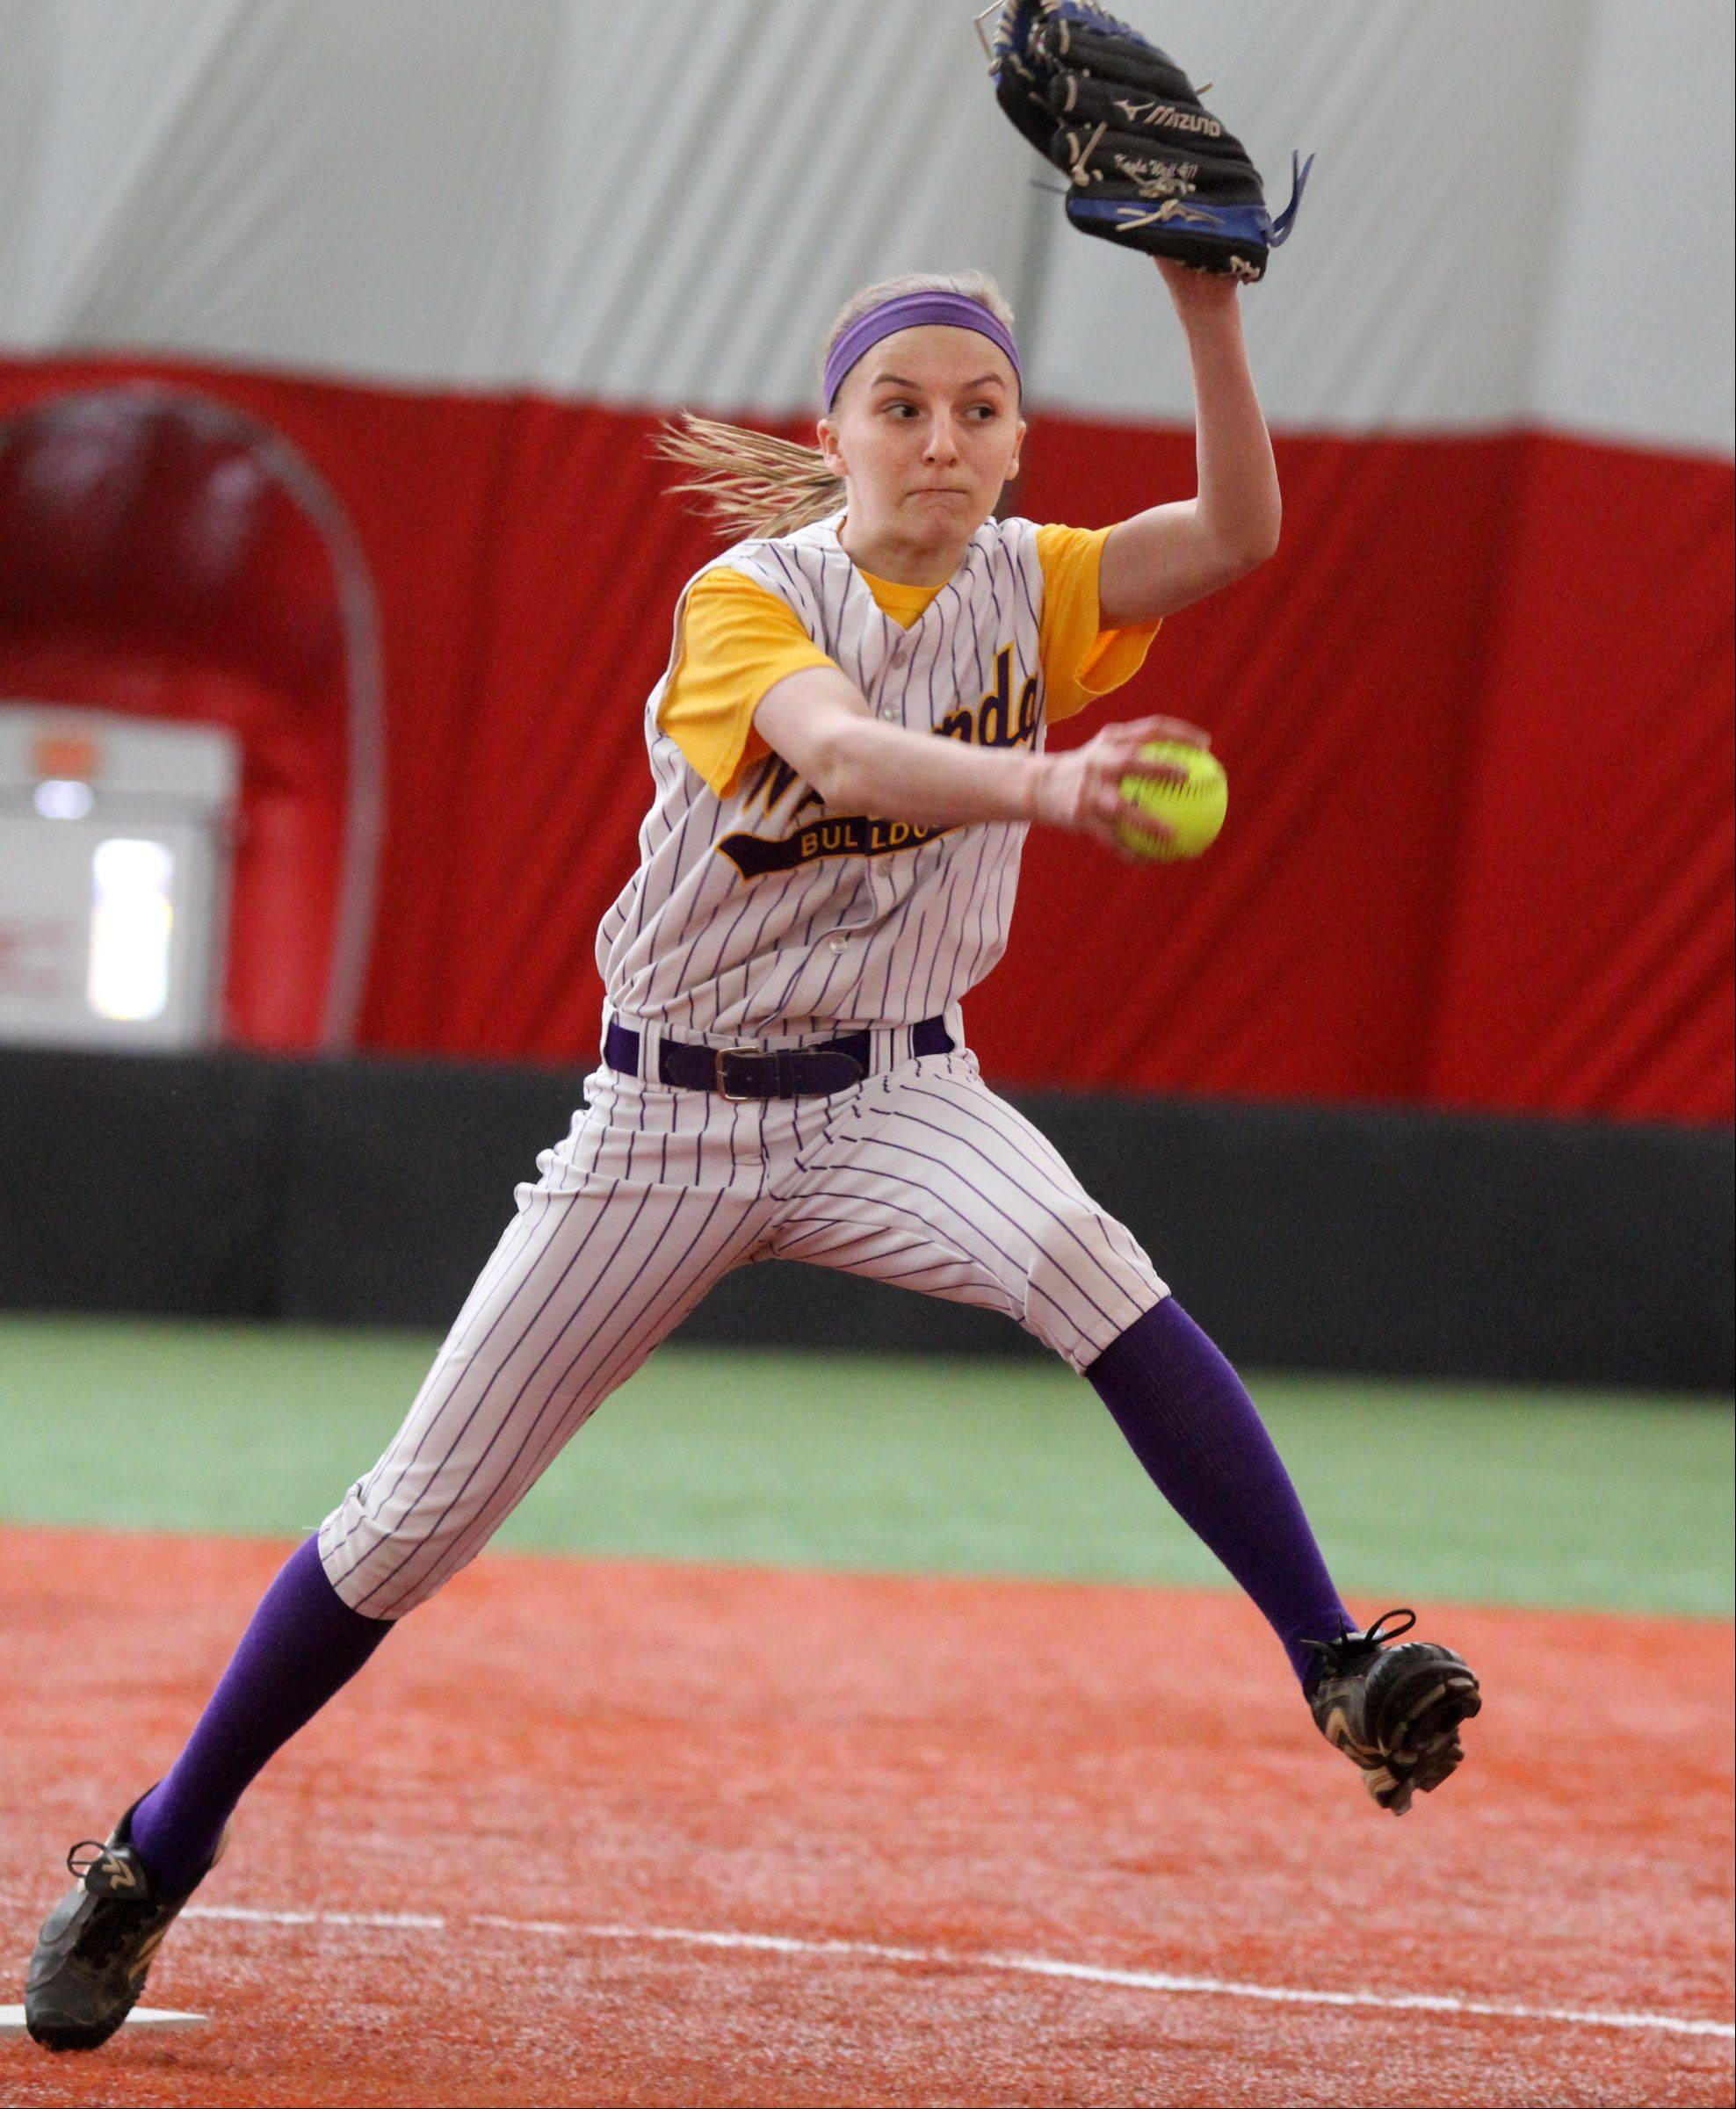 Wauconda High School girls softball pitcher Kayla Wedl played in March in Rosemont's air-supported sports dome. A similar sports dome proposal has surfaced in Grayslake.